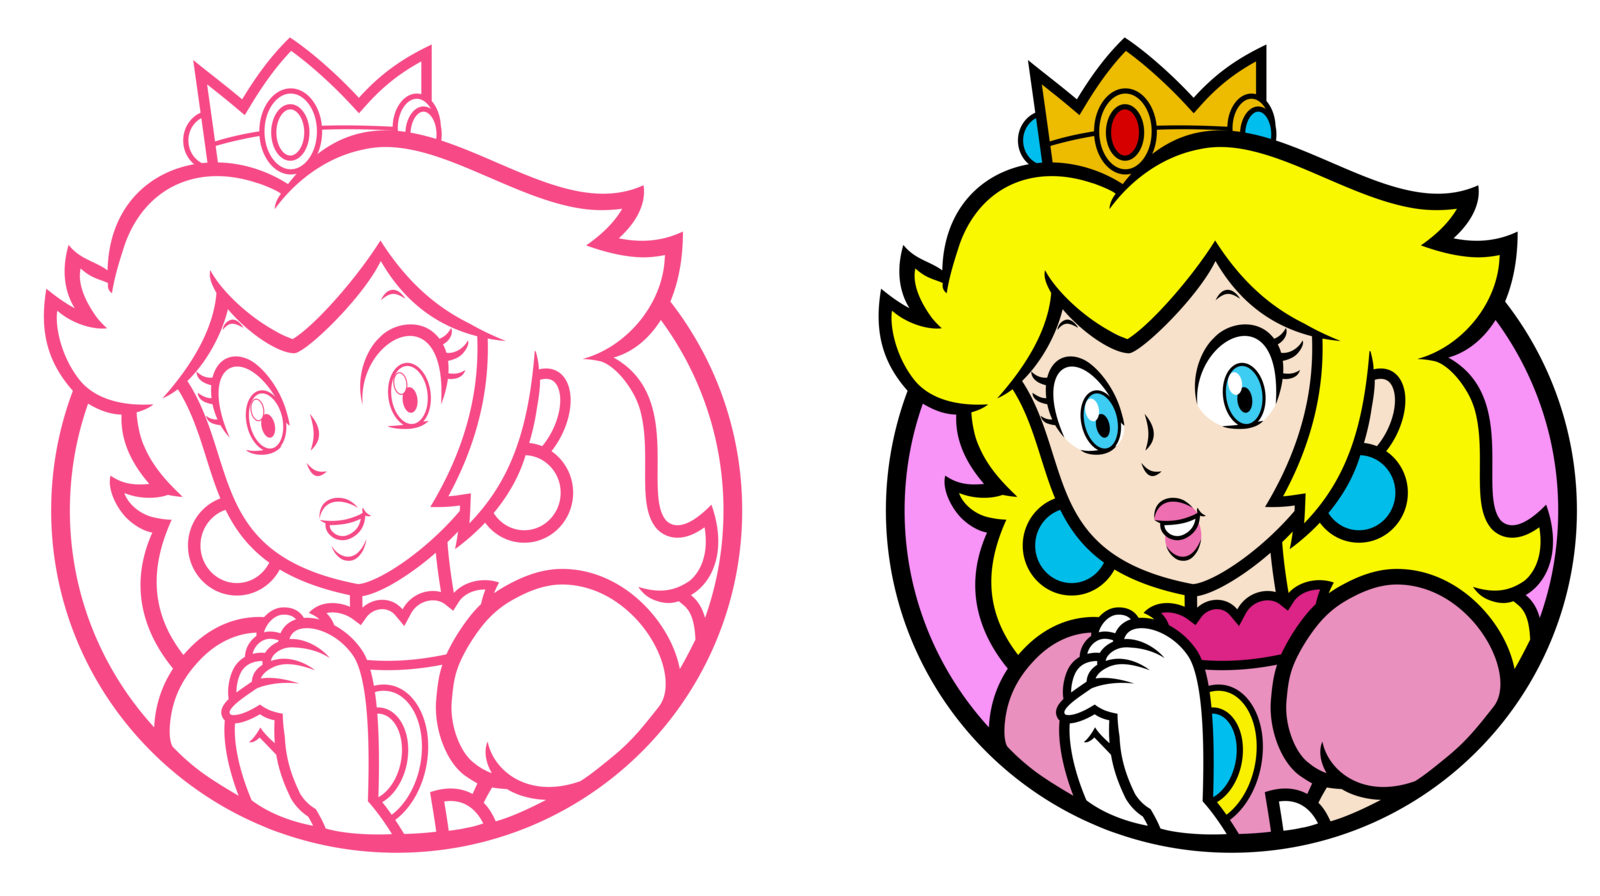 Www vector 3d world. Peach character select icons